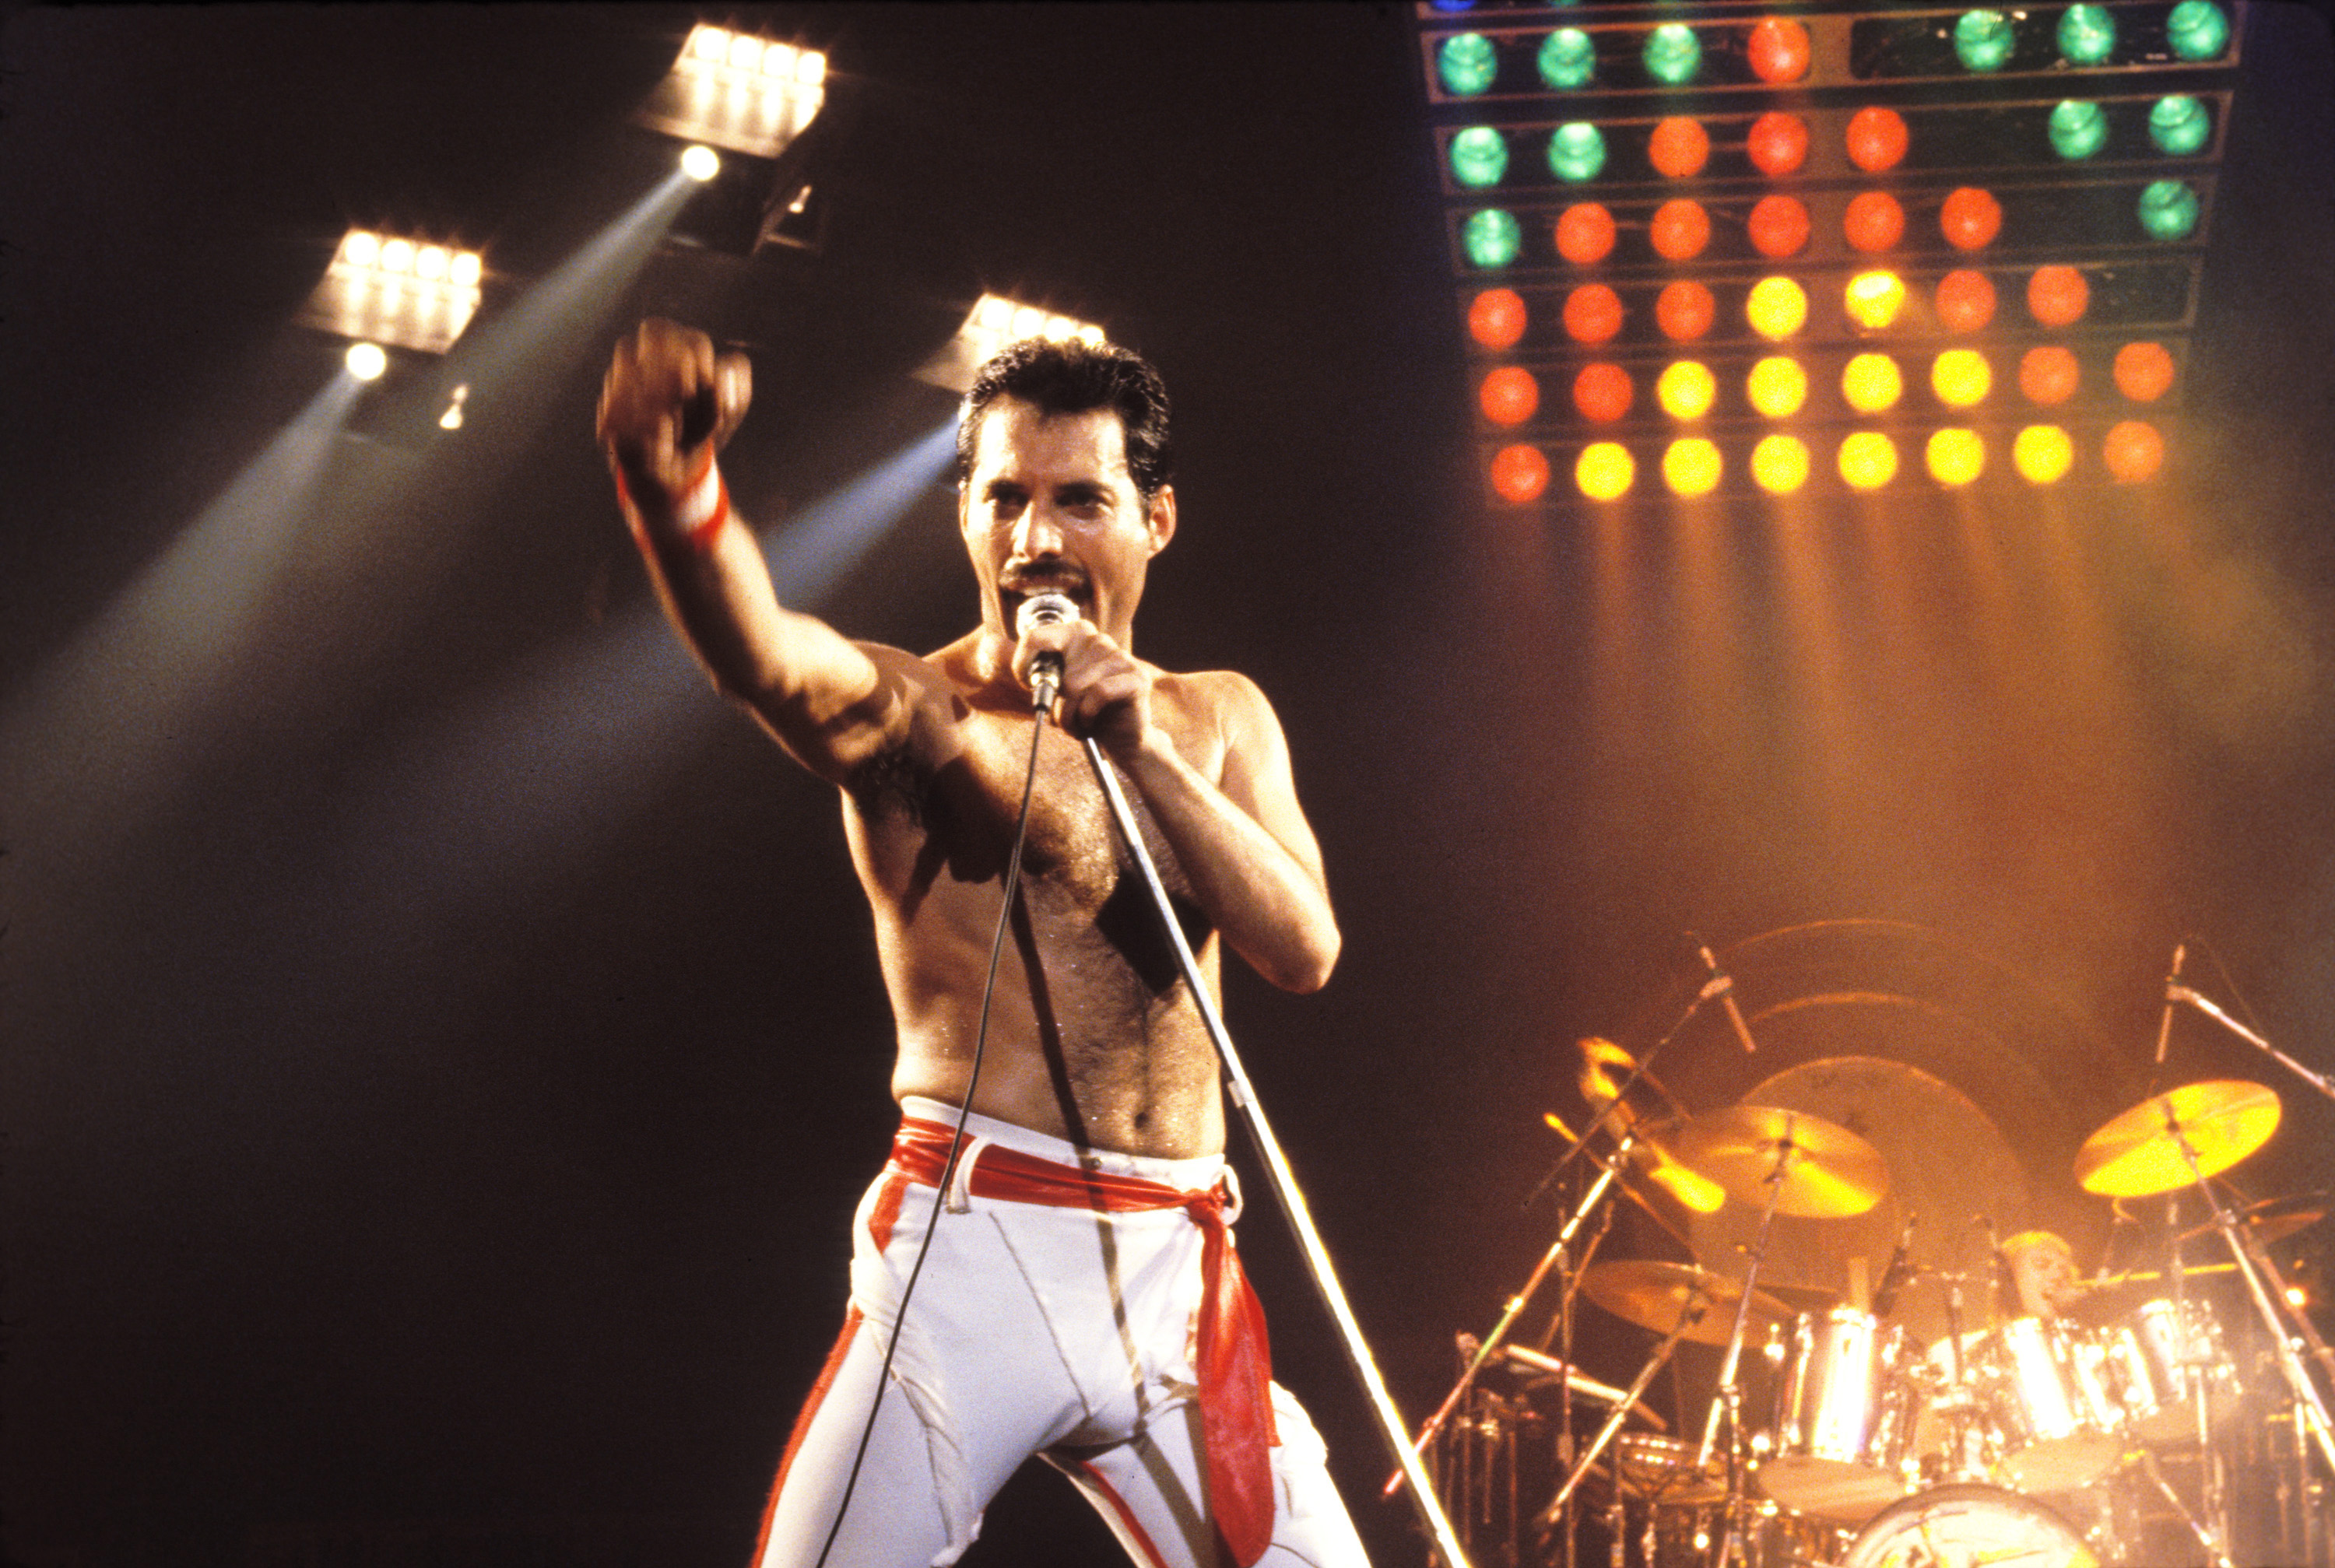 Freddie Mercury of Queen, 1982 Tour at the Various Locations in Oakland, California (Photo by Steve Jennings/WireImage, BA)